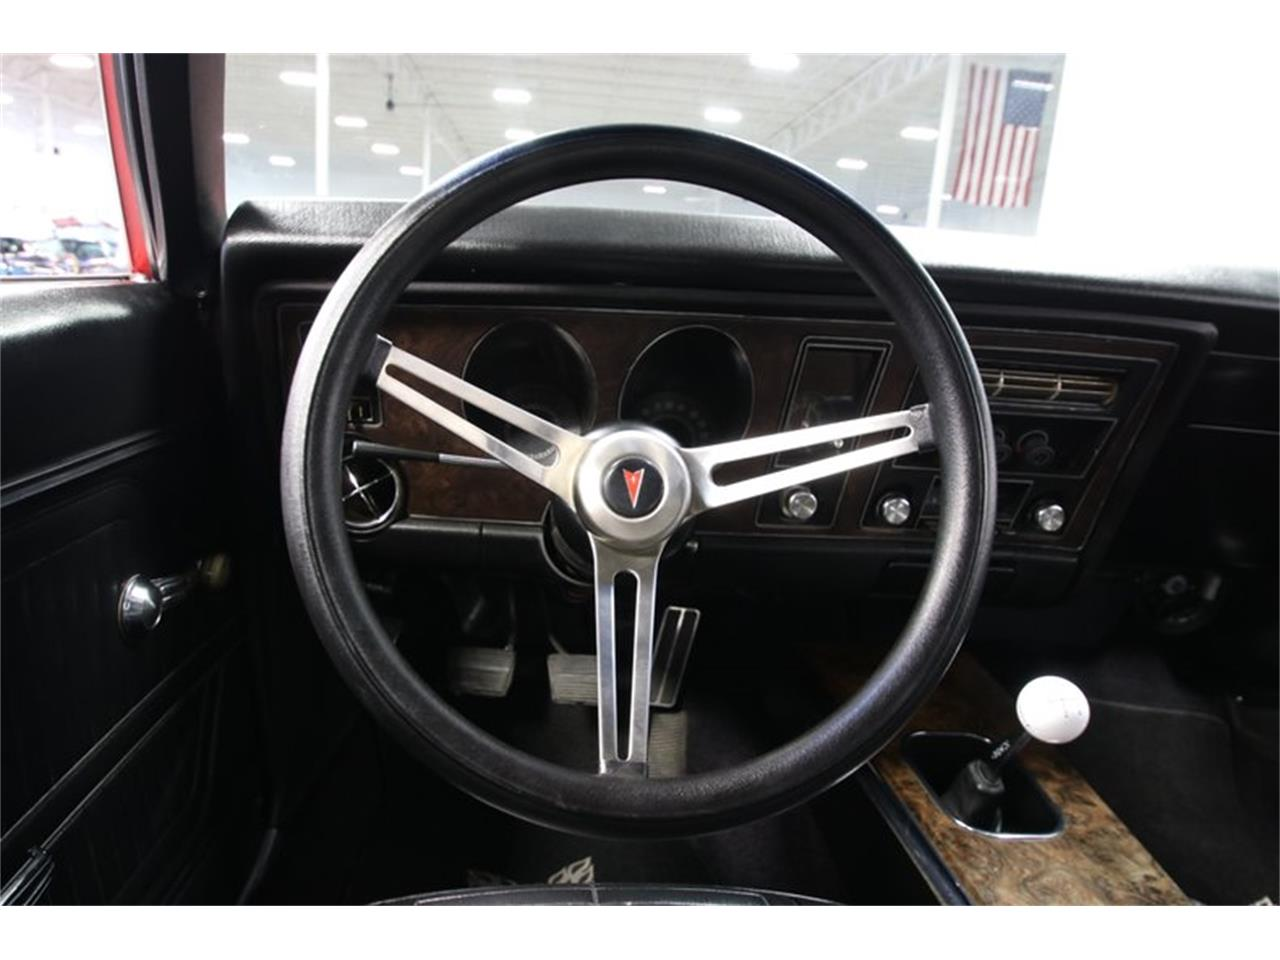 Large Picture of 1969 Pontiac Firebird located in North Carolina - $28,995.00 - PVY7